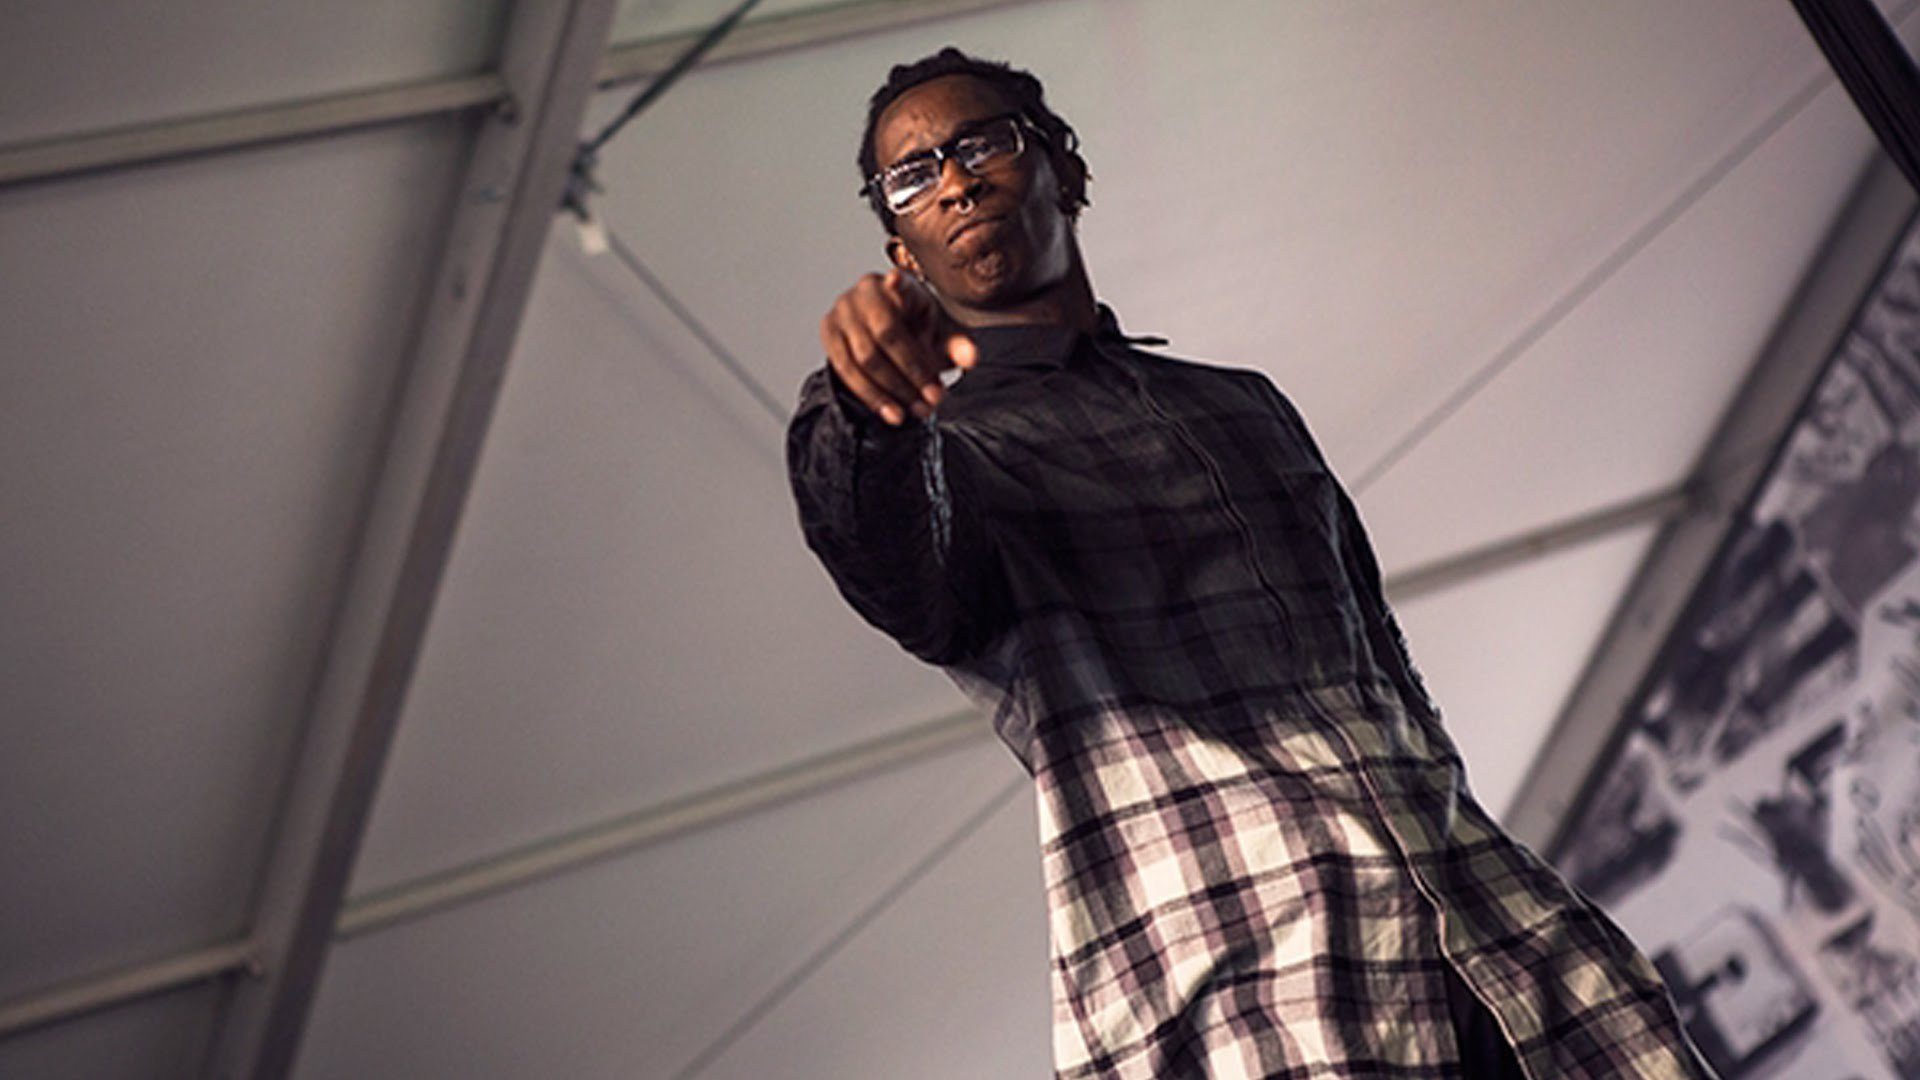 Young Thug Wallpapers Images Photos Pictures Backgrounds 1920x1080